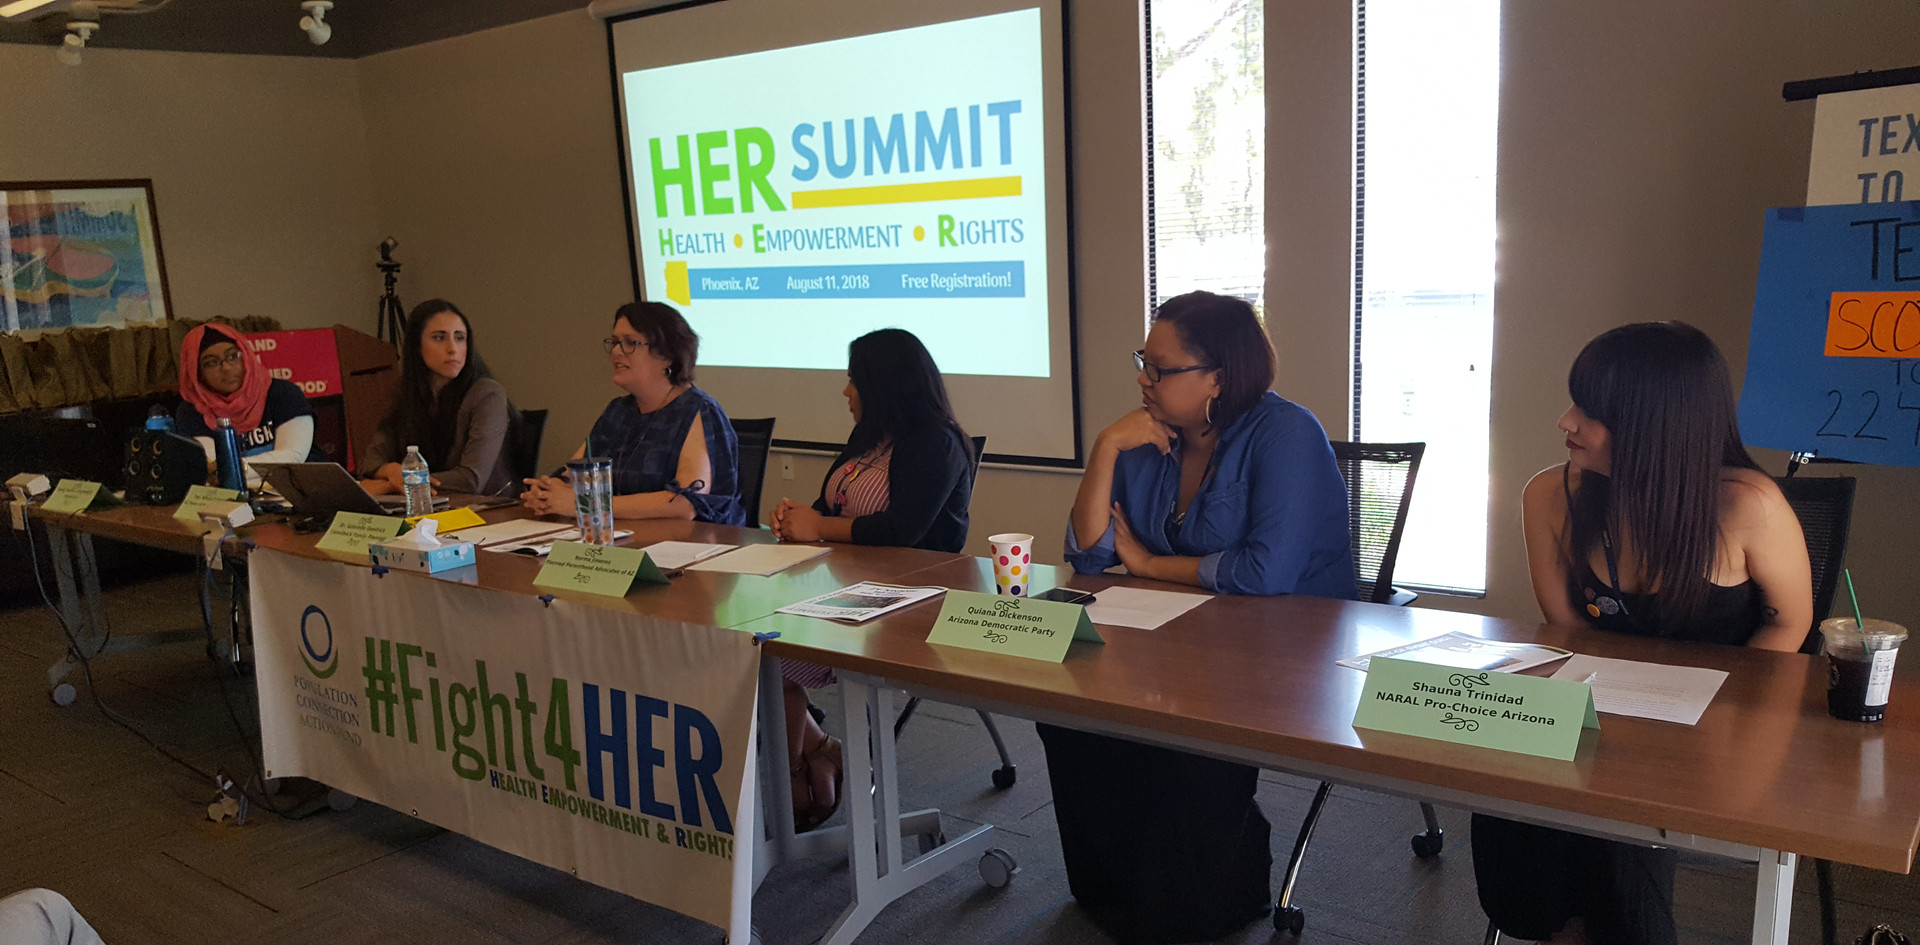 Panelists discuss the state of reproductive rights in Arizona, the U.S., and around the world at the Health, Empowerment, and Rights Summit